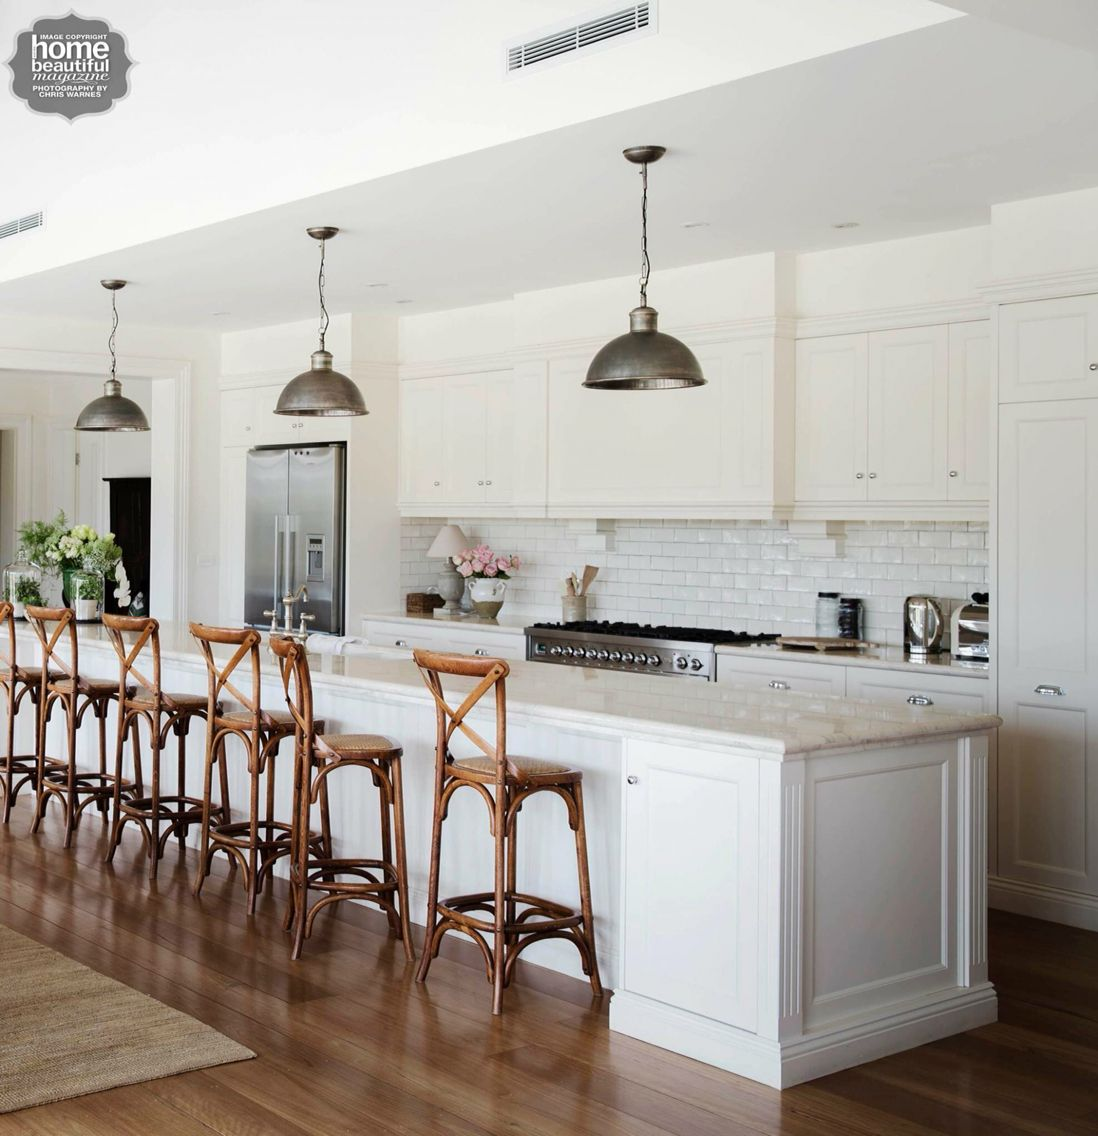 Country Kitchen Pictures 2019: French Provincial Kitchen With White Subway Tile And